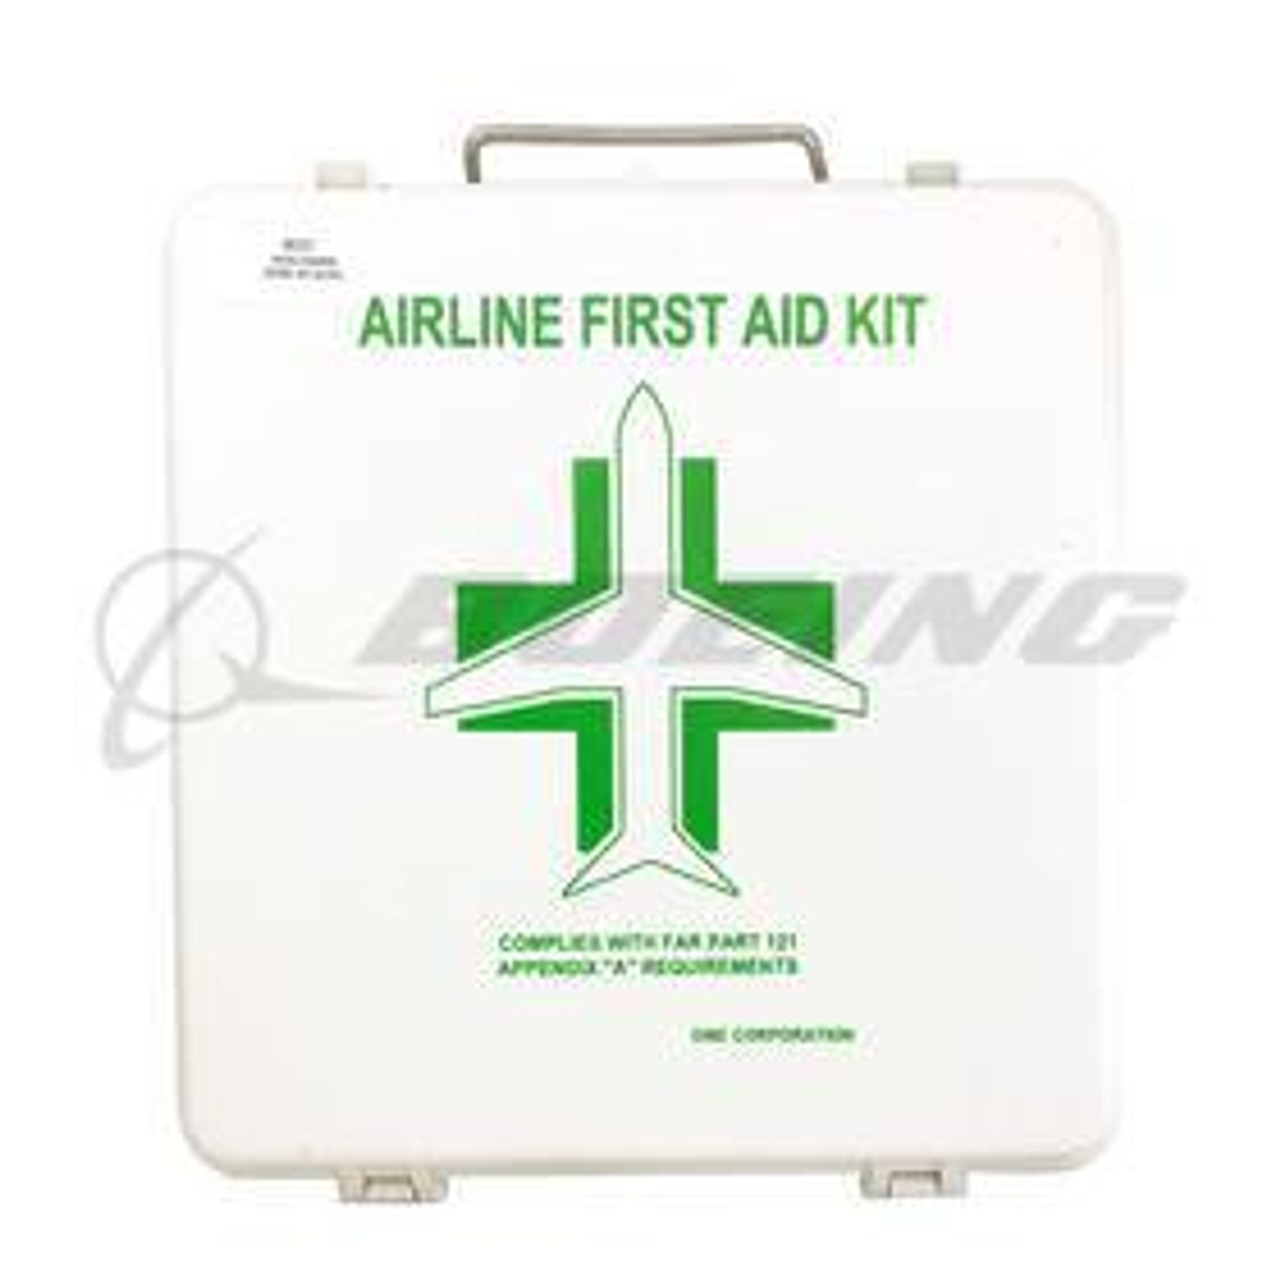 Astronics DME Corporation S6-01-0006-004 First Aid Kit - Part#: S6-01-0006-004by Astronics DME Corporation A lightweight, industry approved kit that is designed for use on commercial airlines as well as general aviation aircraft. The case is made of flame resistant polyester and is just the right size for fitting into small aircraft spaces. All the contents of this kit are labeled for simple identification in the event of an emergency.